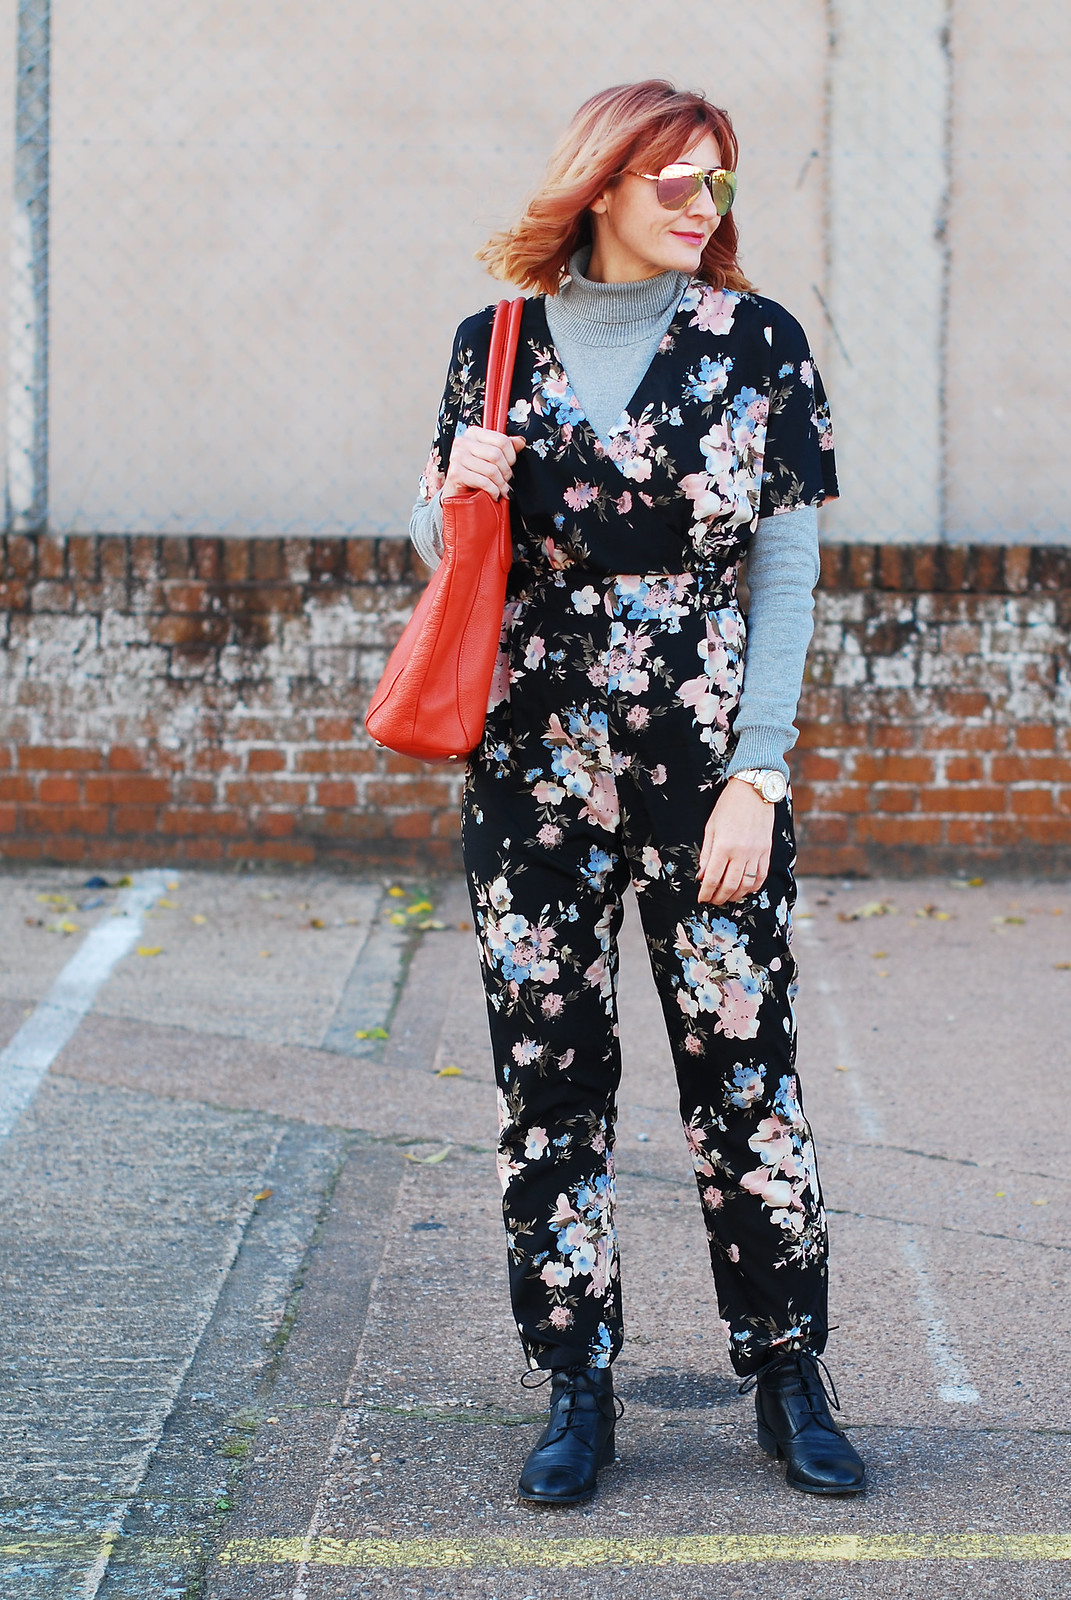 Dark floral jumpsuit styled for autumn / fall / winter layered with a roll neck, boots | Not Dressed As Lamb, over 40 style